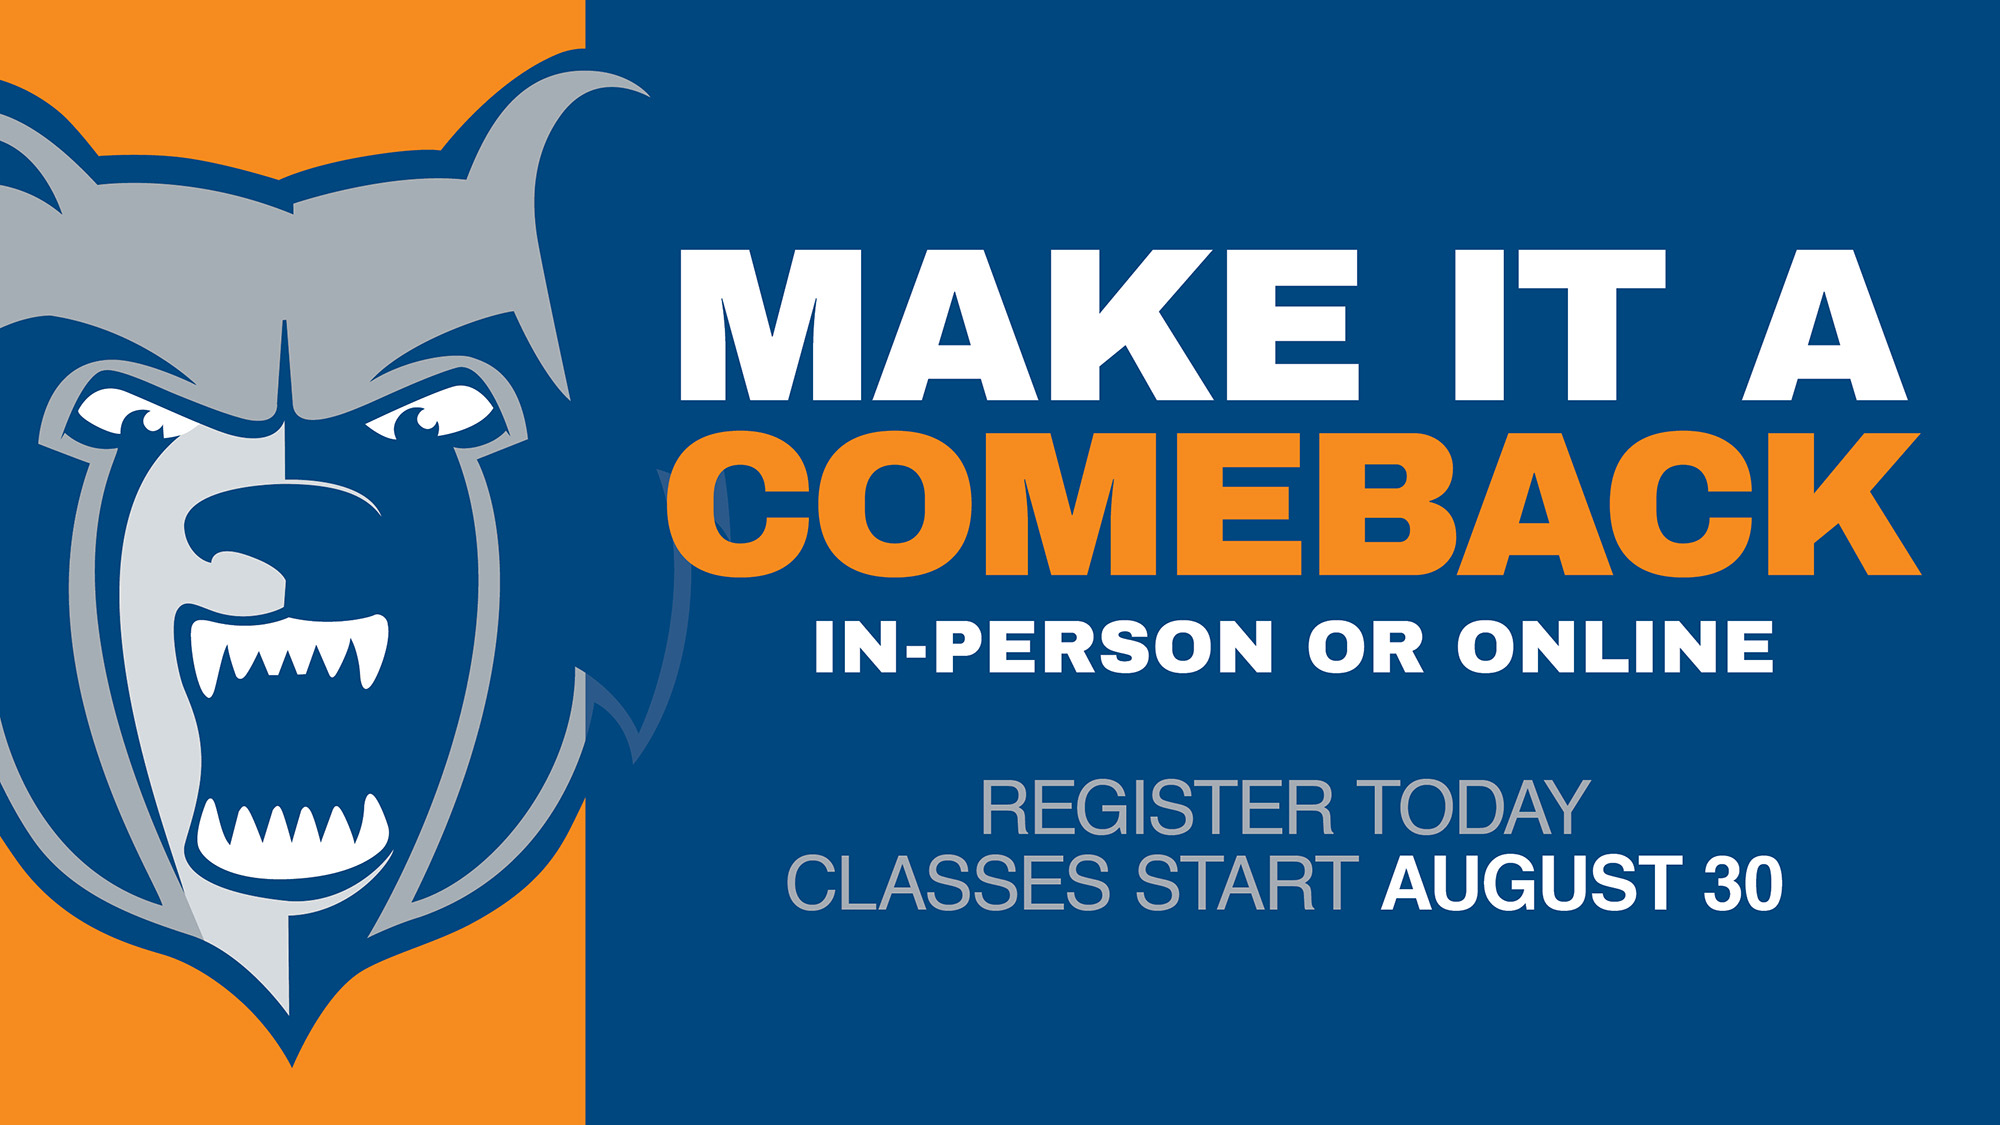 """A blue and orange text slide including the Bruin head logo and text that reads """"Make it a comeback. In-person or online. Register today. Classes start August 30."""""""